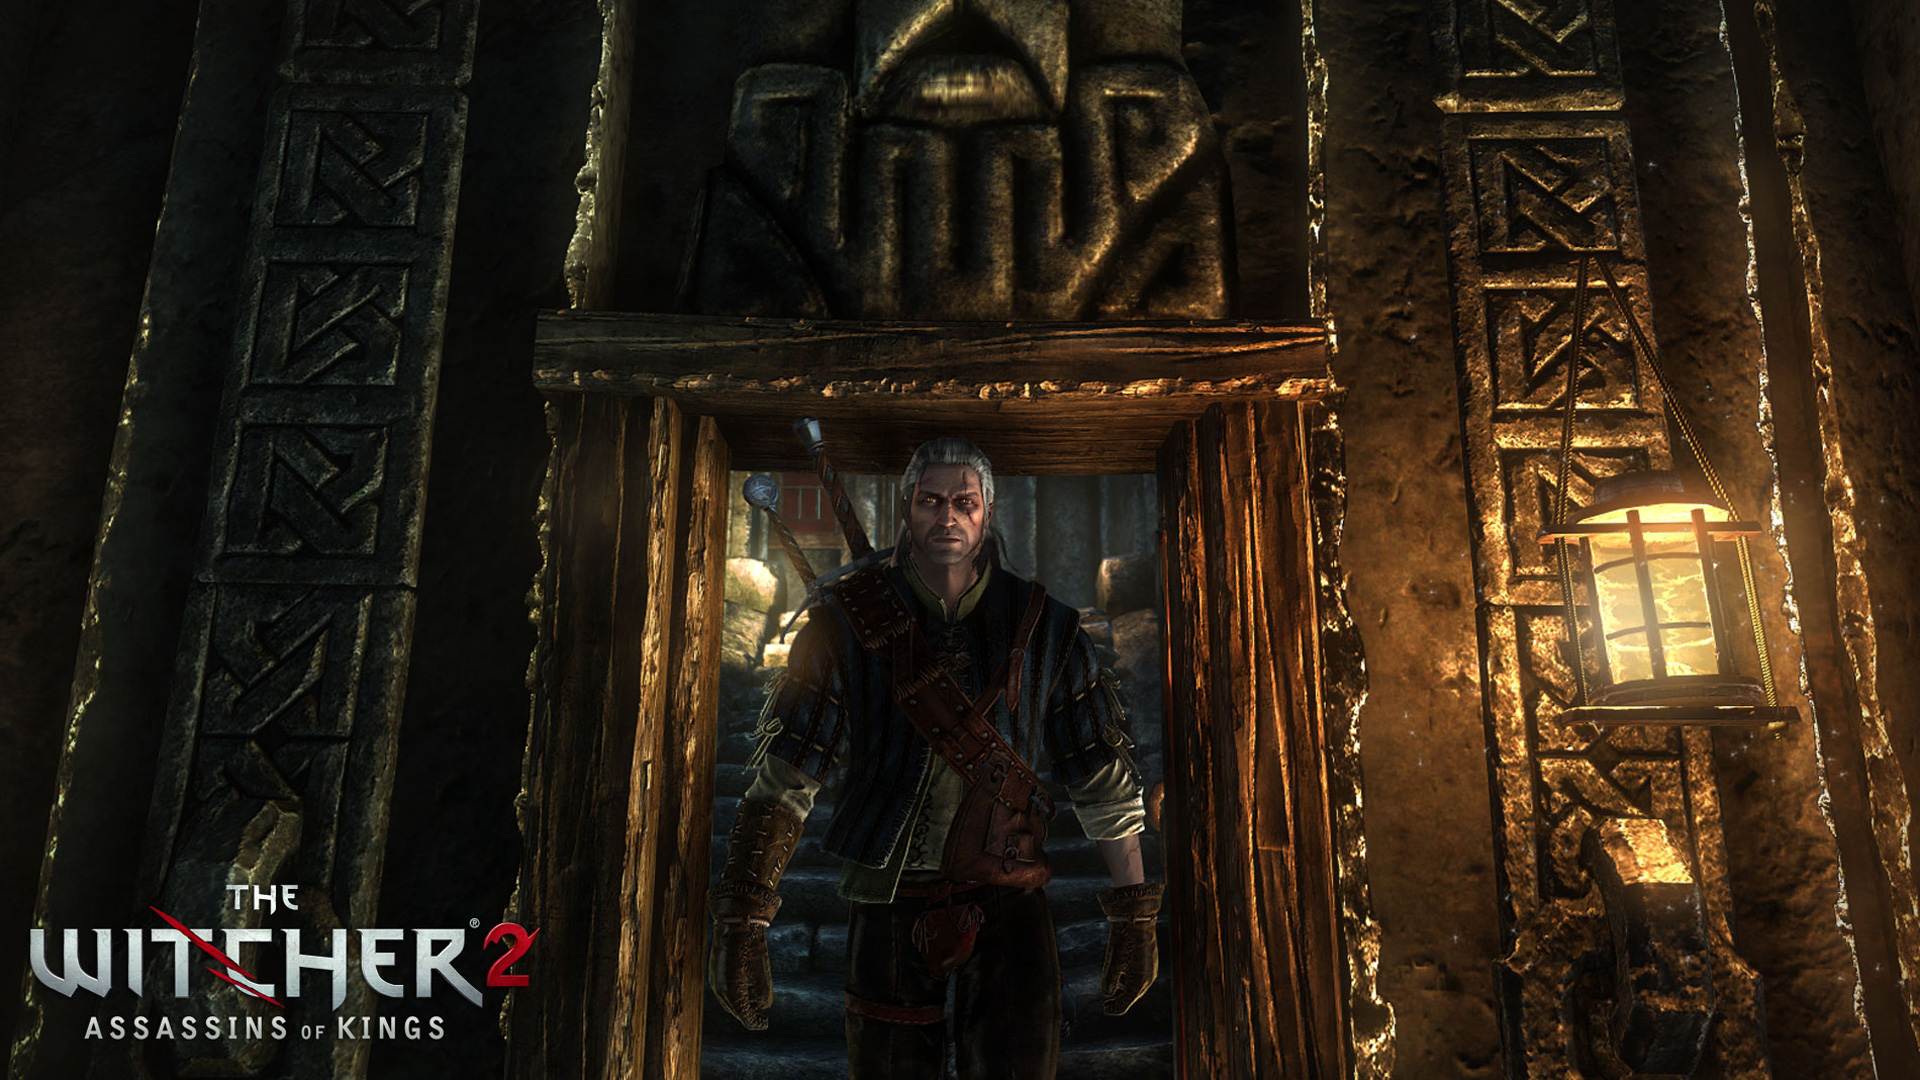 Free The Witcher 2 Wallpaper in 1920x1080